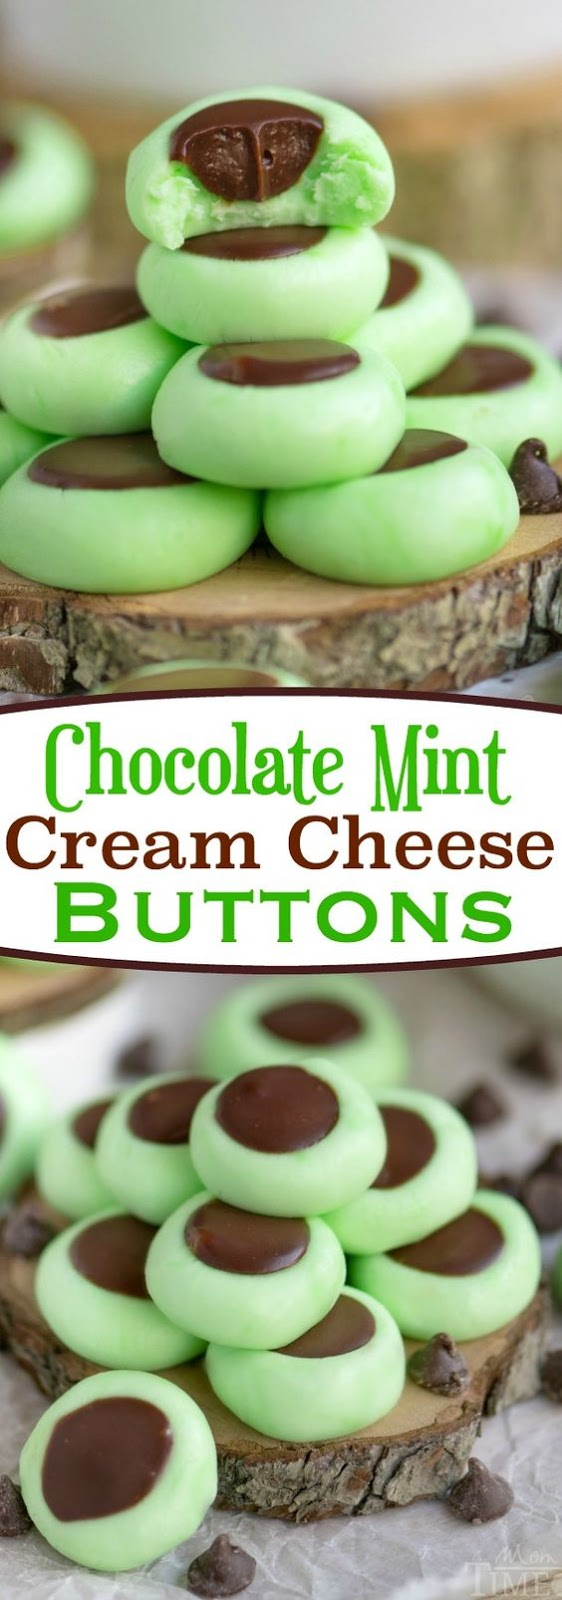 ★★★★★ 10 Review : CHOCOLATE MINT CREAM CHEESE BUTTONS #cookies #easycookirecipes #cookierecipes #chocolate #chocolatechip #mint #cream #buttons